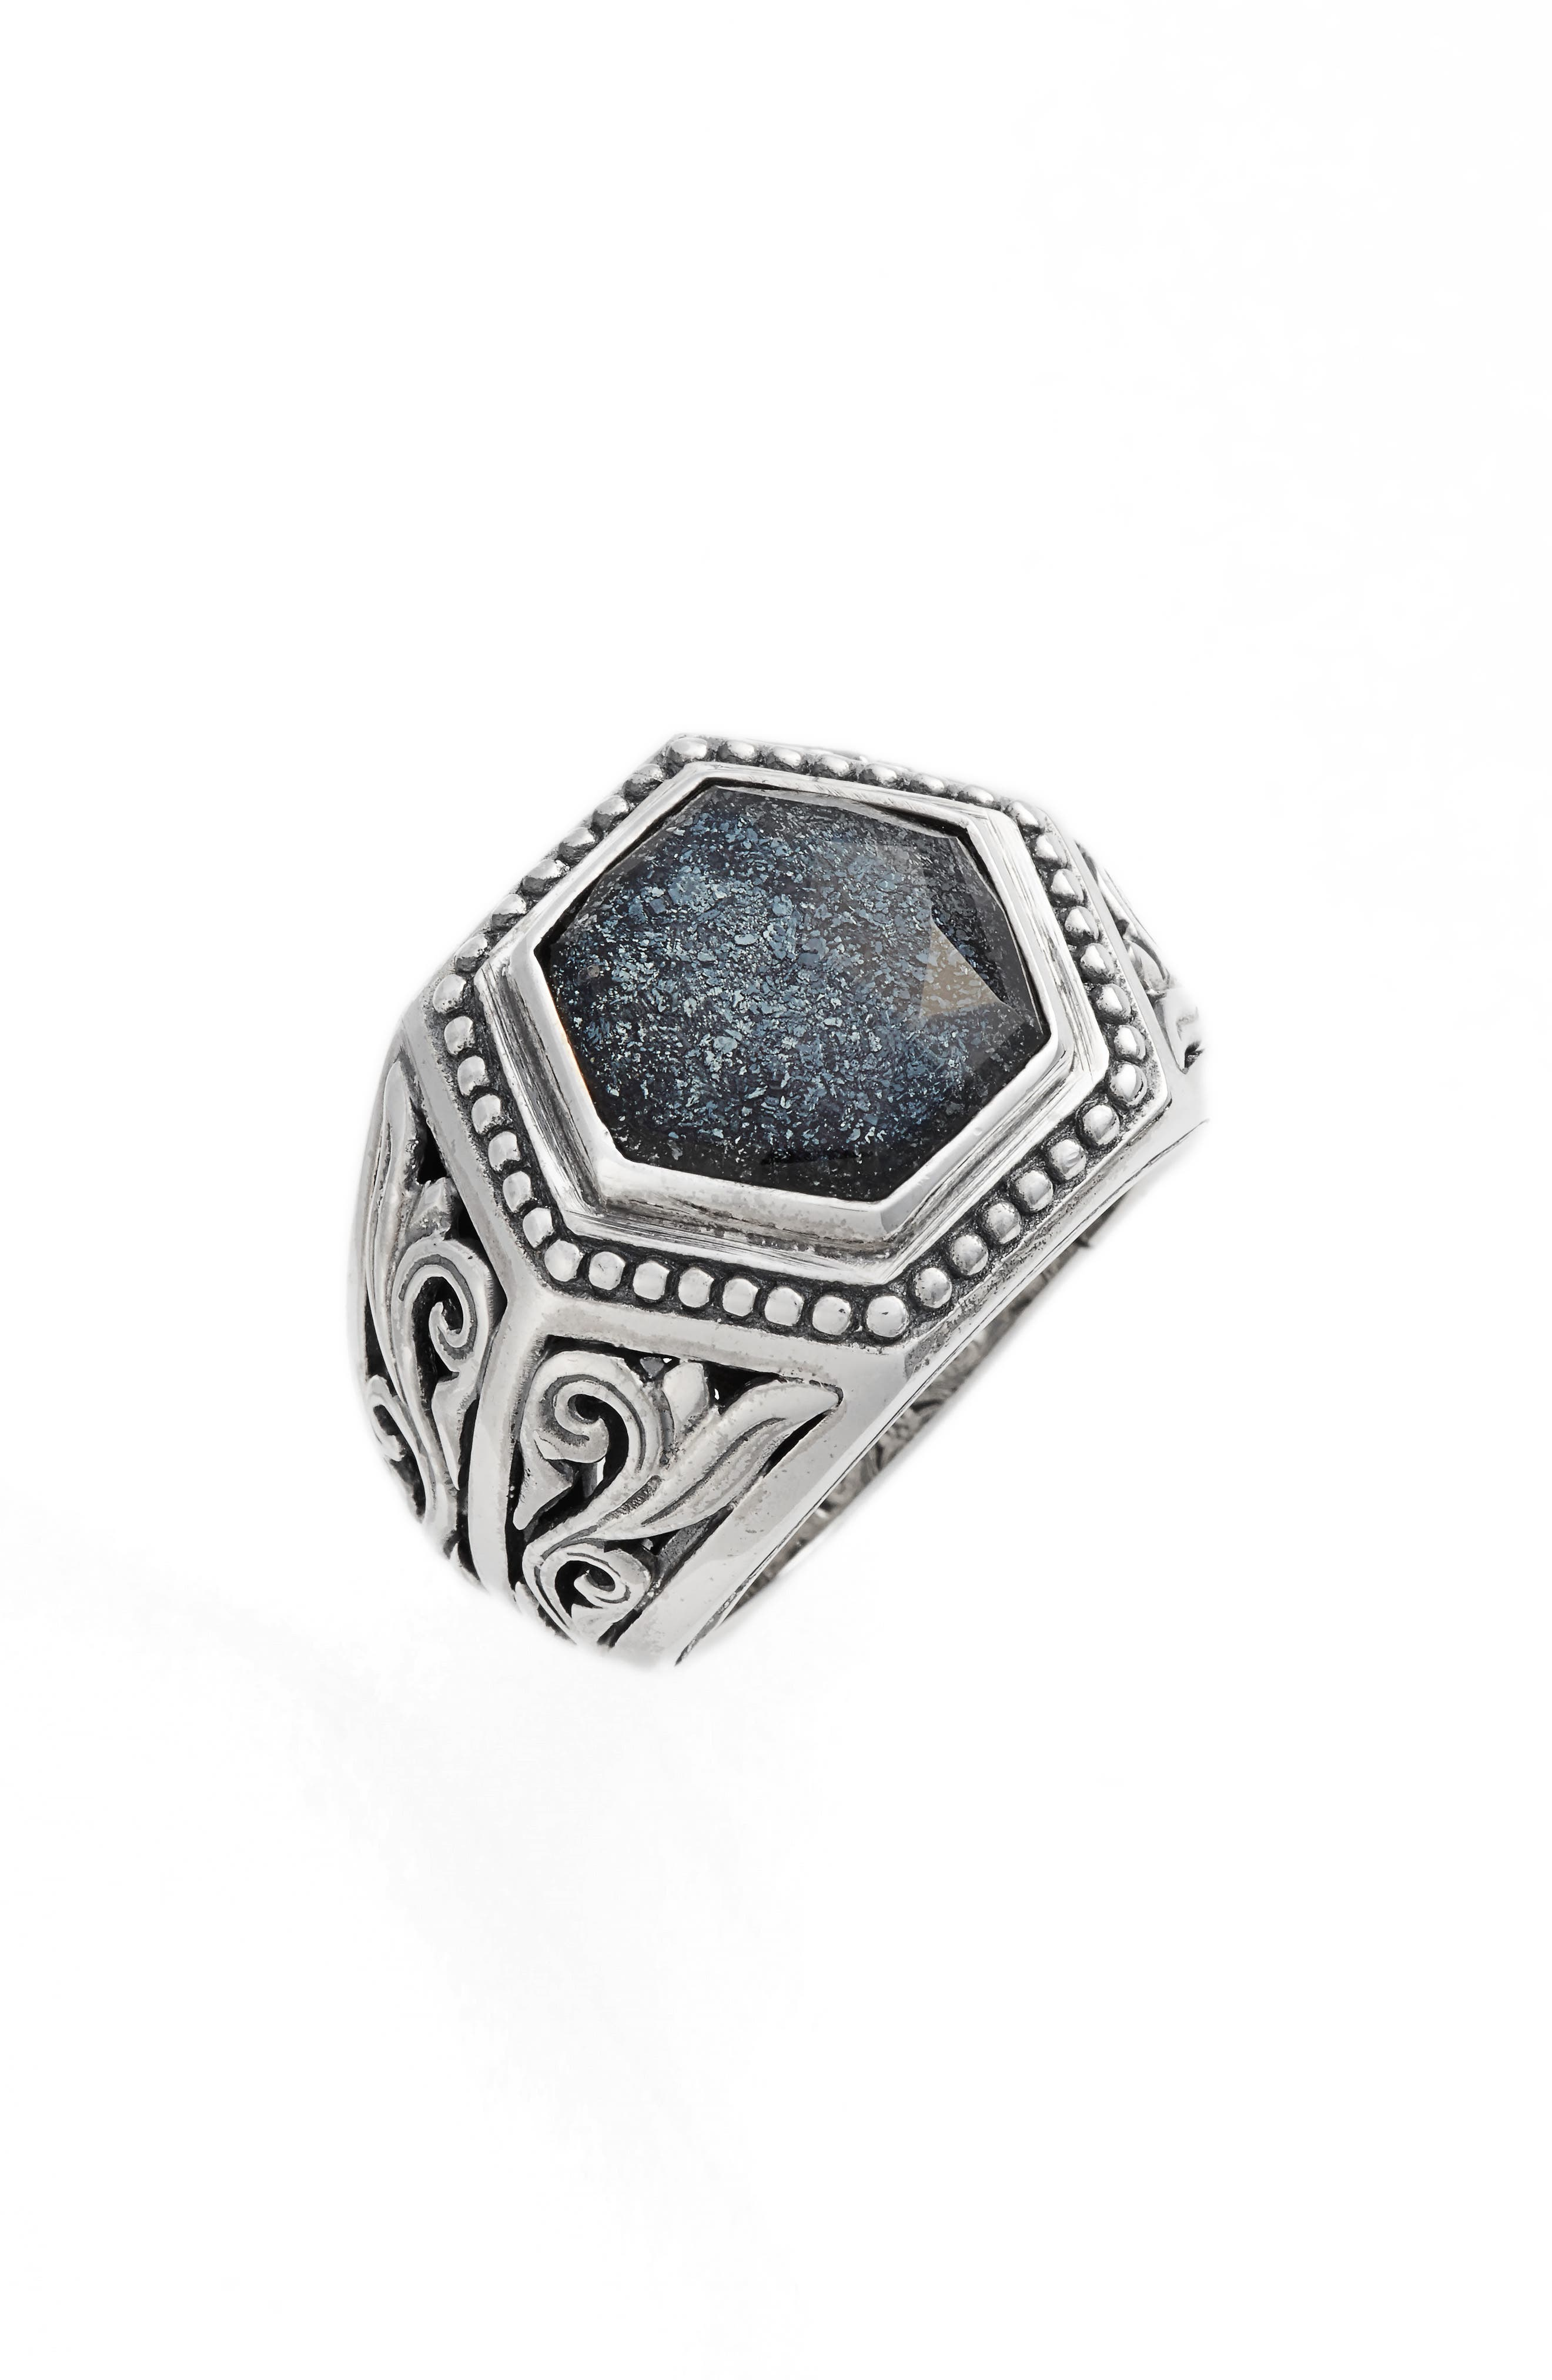 Konstantino Specular Hematite Doublet Ring, Size 7